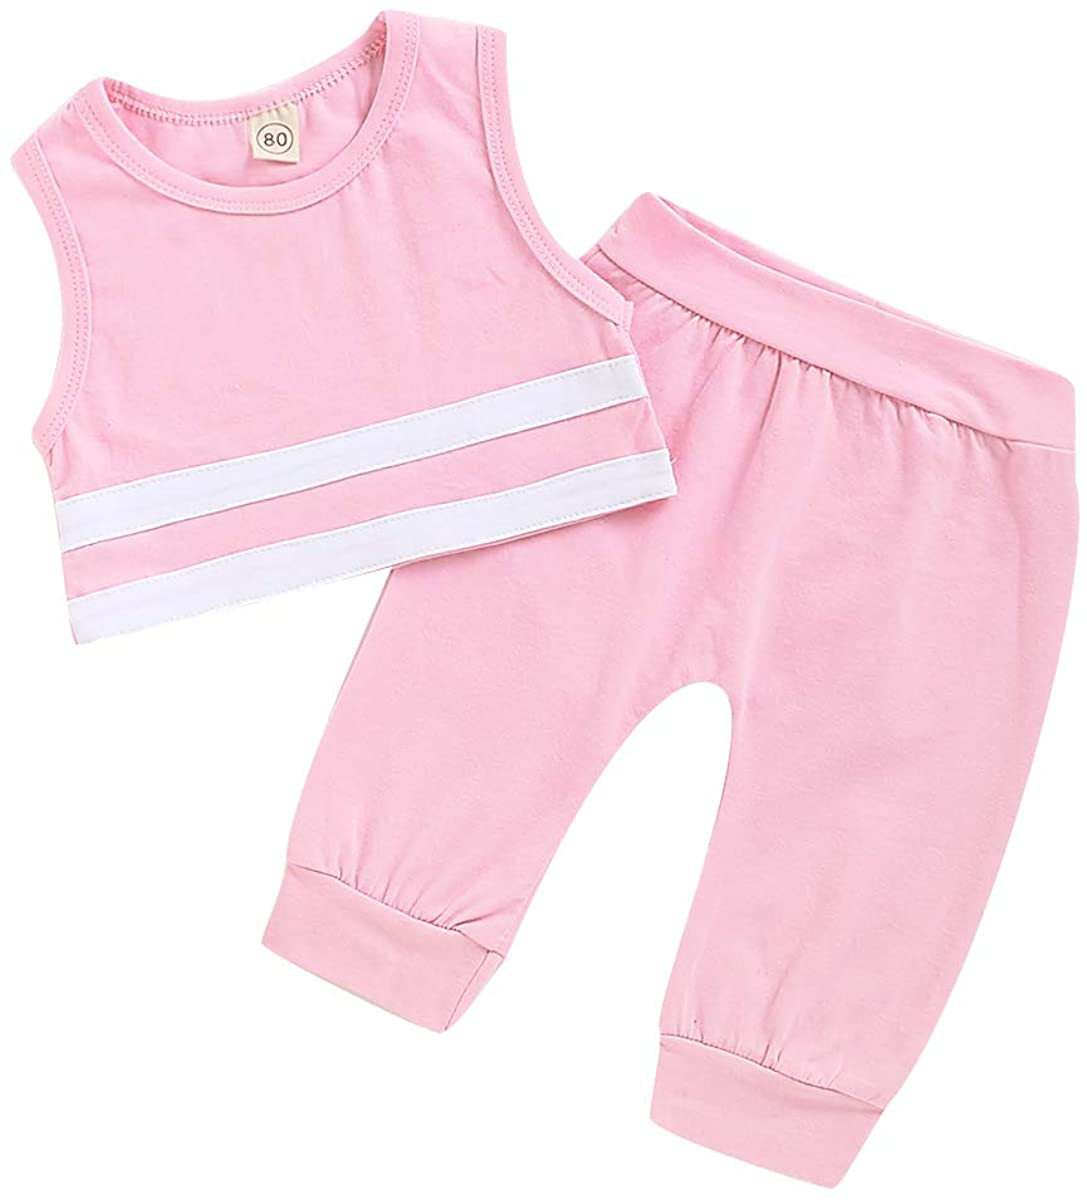 Infant Toddler Baby Girls Summer Clothes Sets Sleeveless Stripe T-Shirt Tops+Pants 2Pcs Sports Outfits